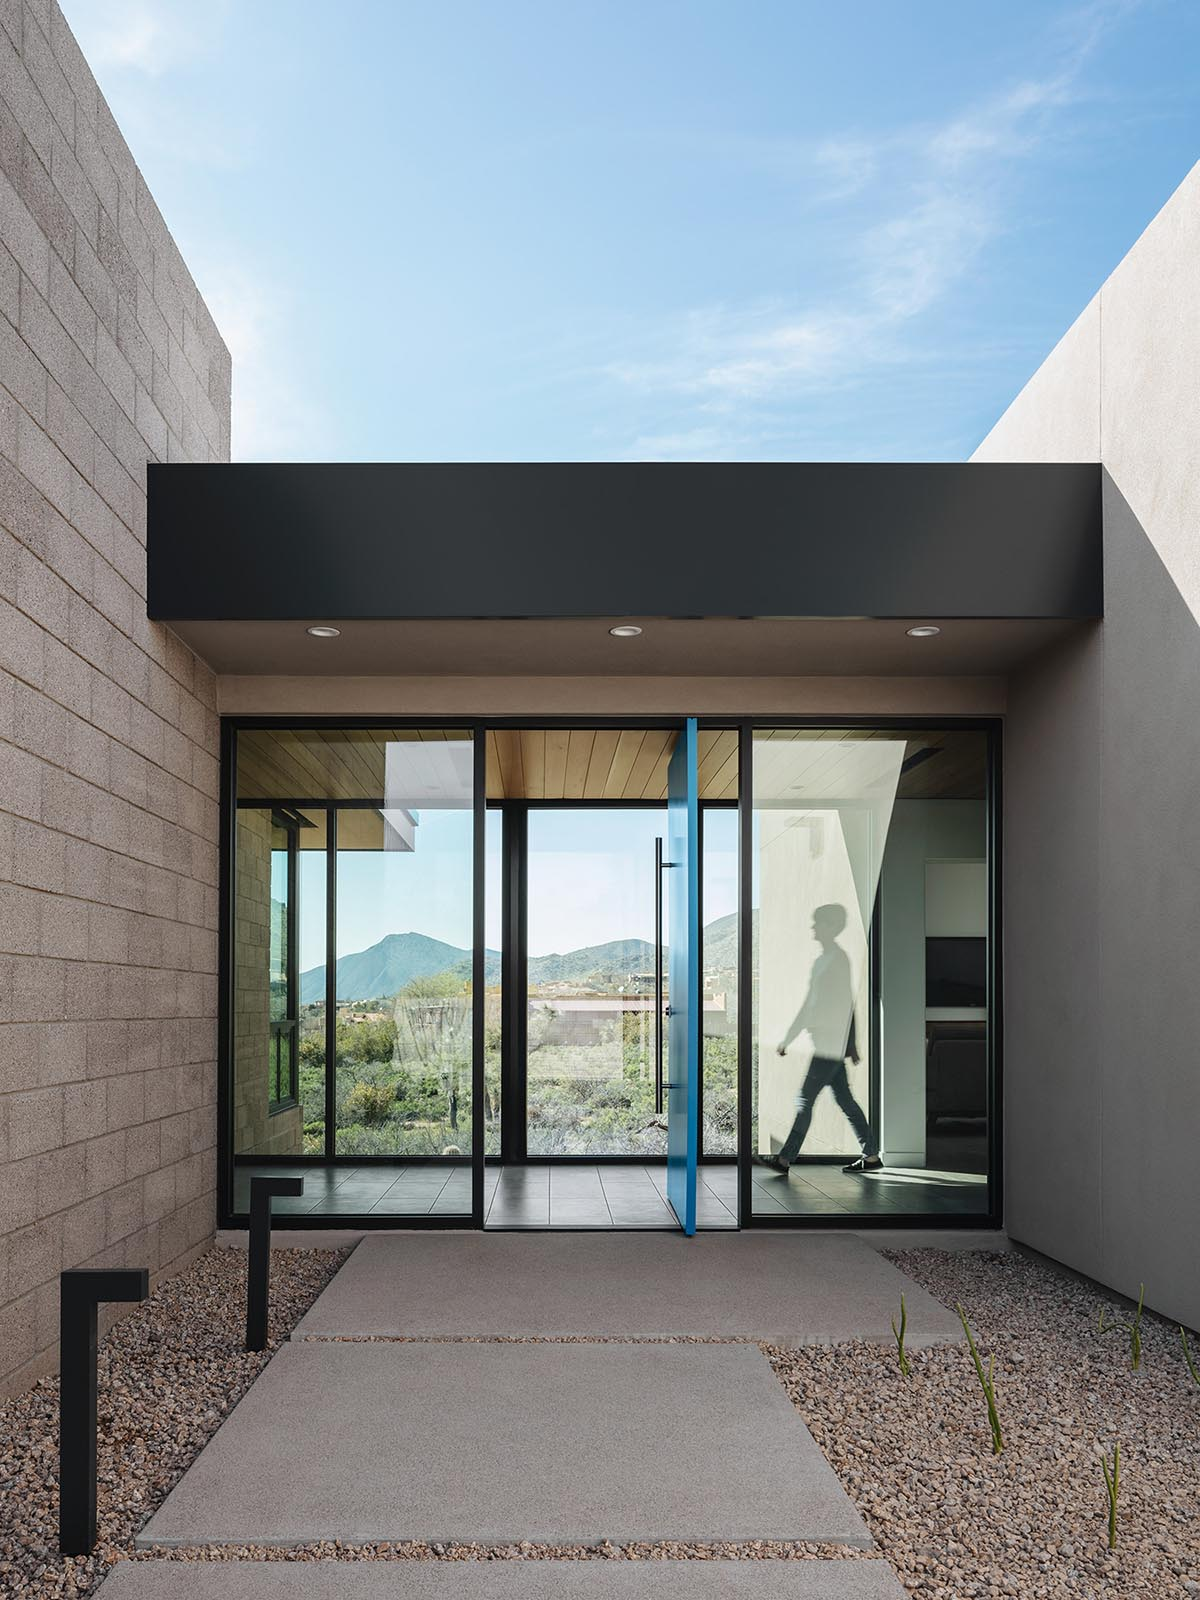 A modern desert home with bright blue pivoting front door.